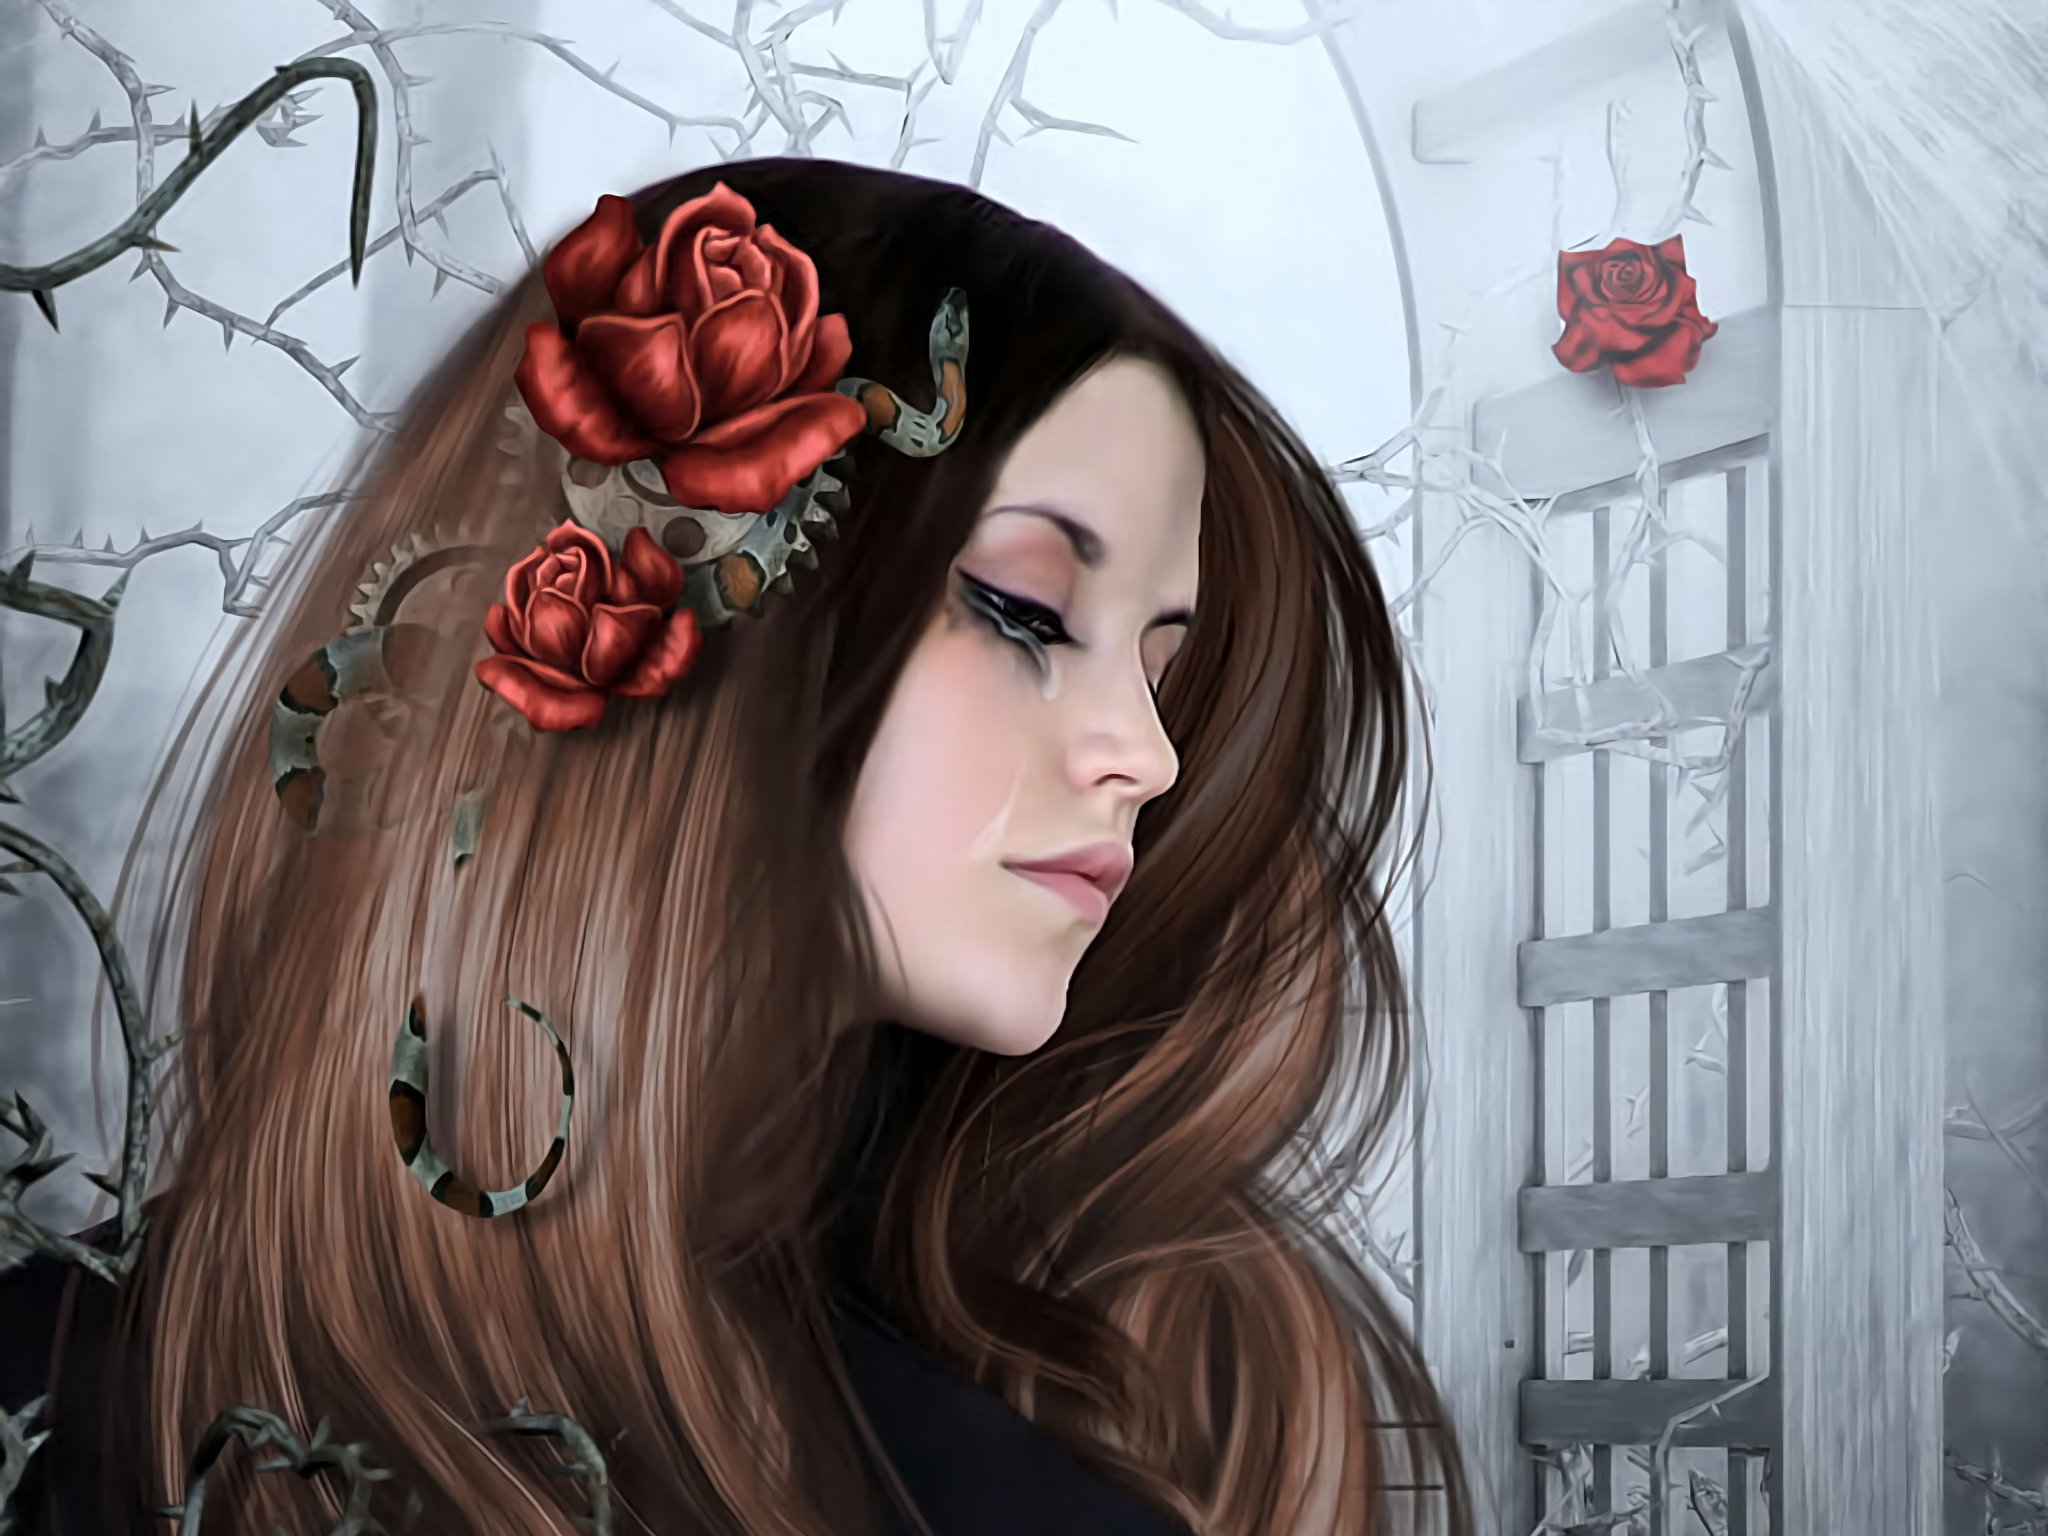 Snakes and roses full hd wallpaper and background image fantasy women tears fantasy woman hair snake rose wallpaper voltagebd Choice Image